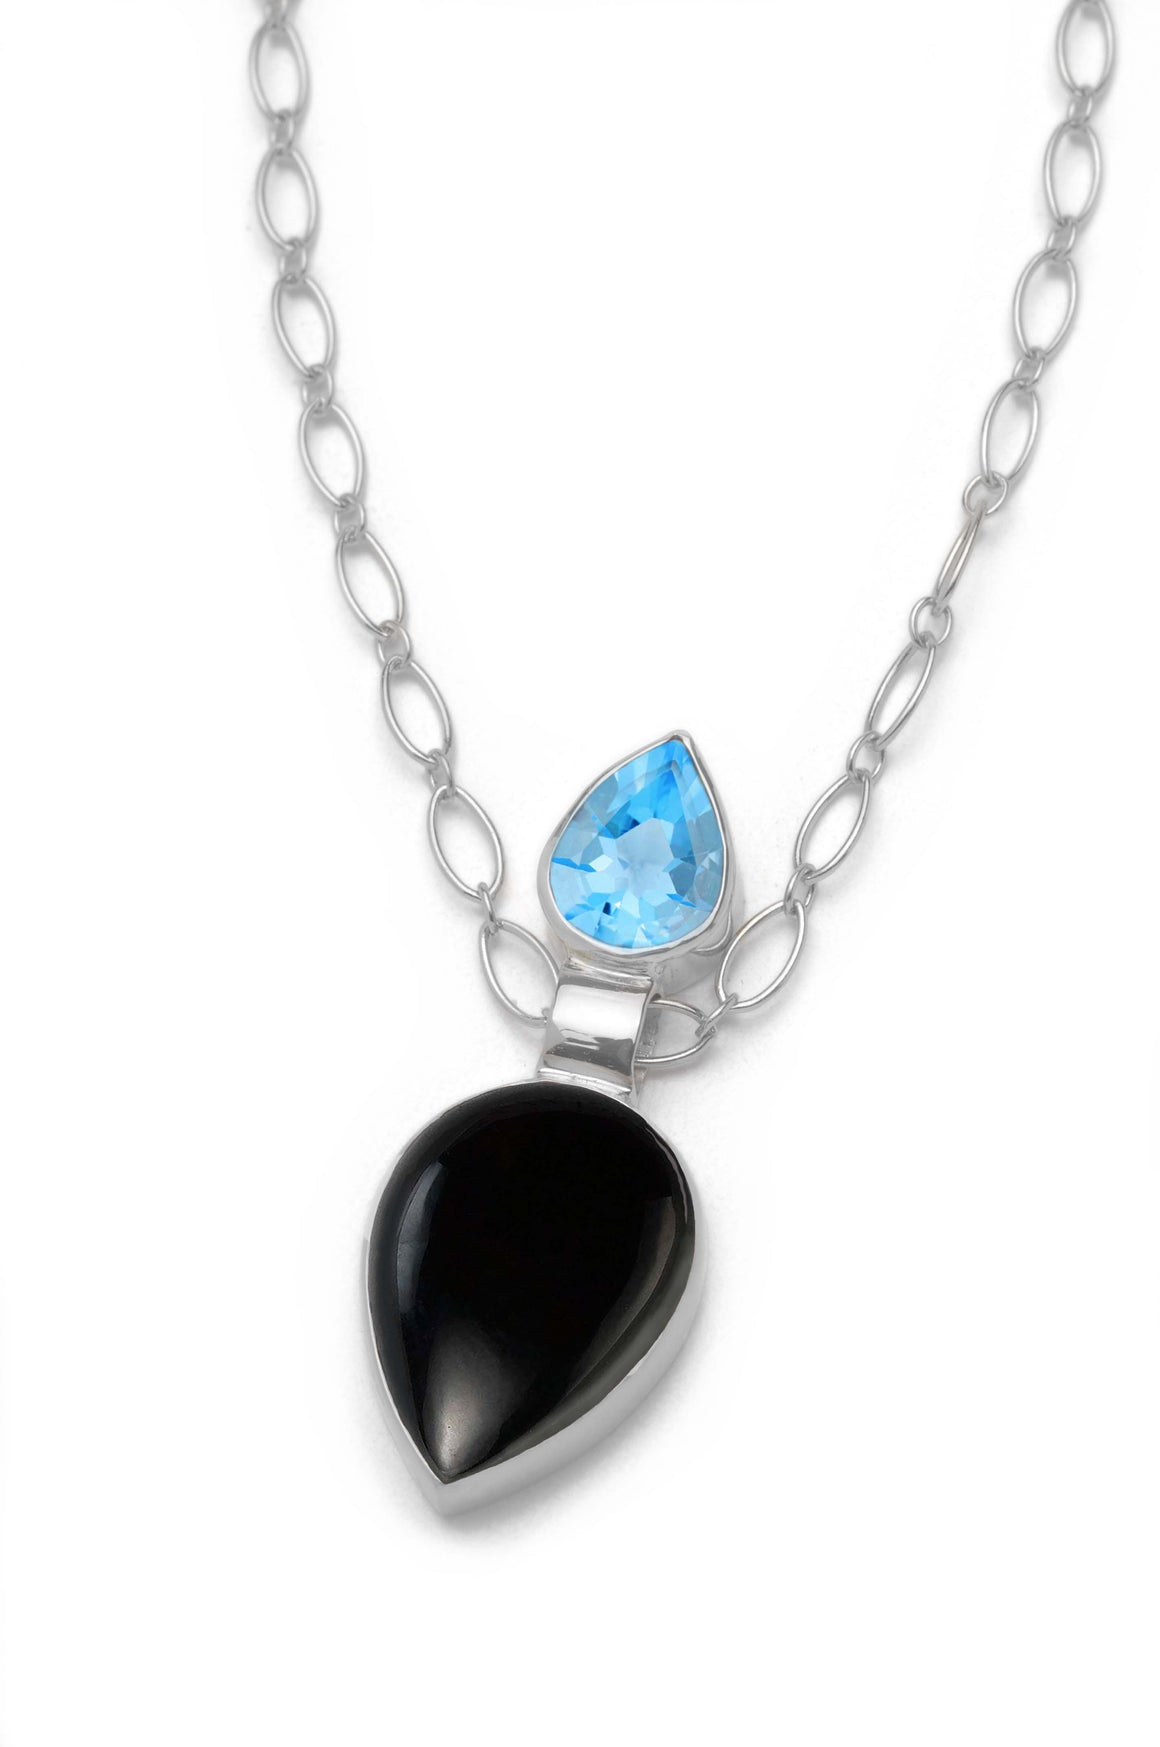 Pendulum Necklace - Onyx and Swiss Topaz